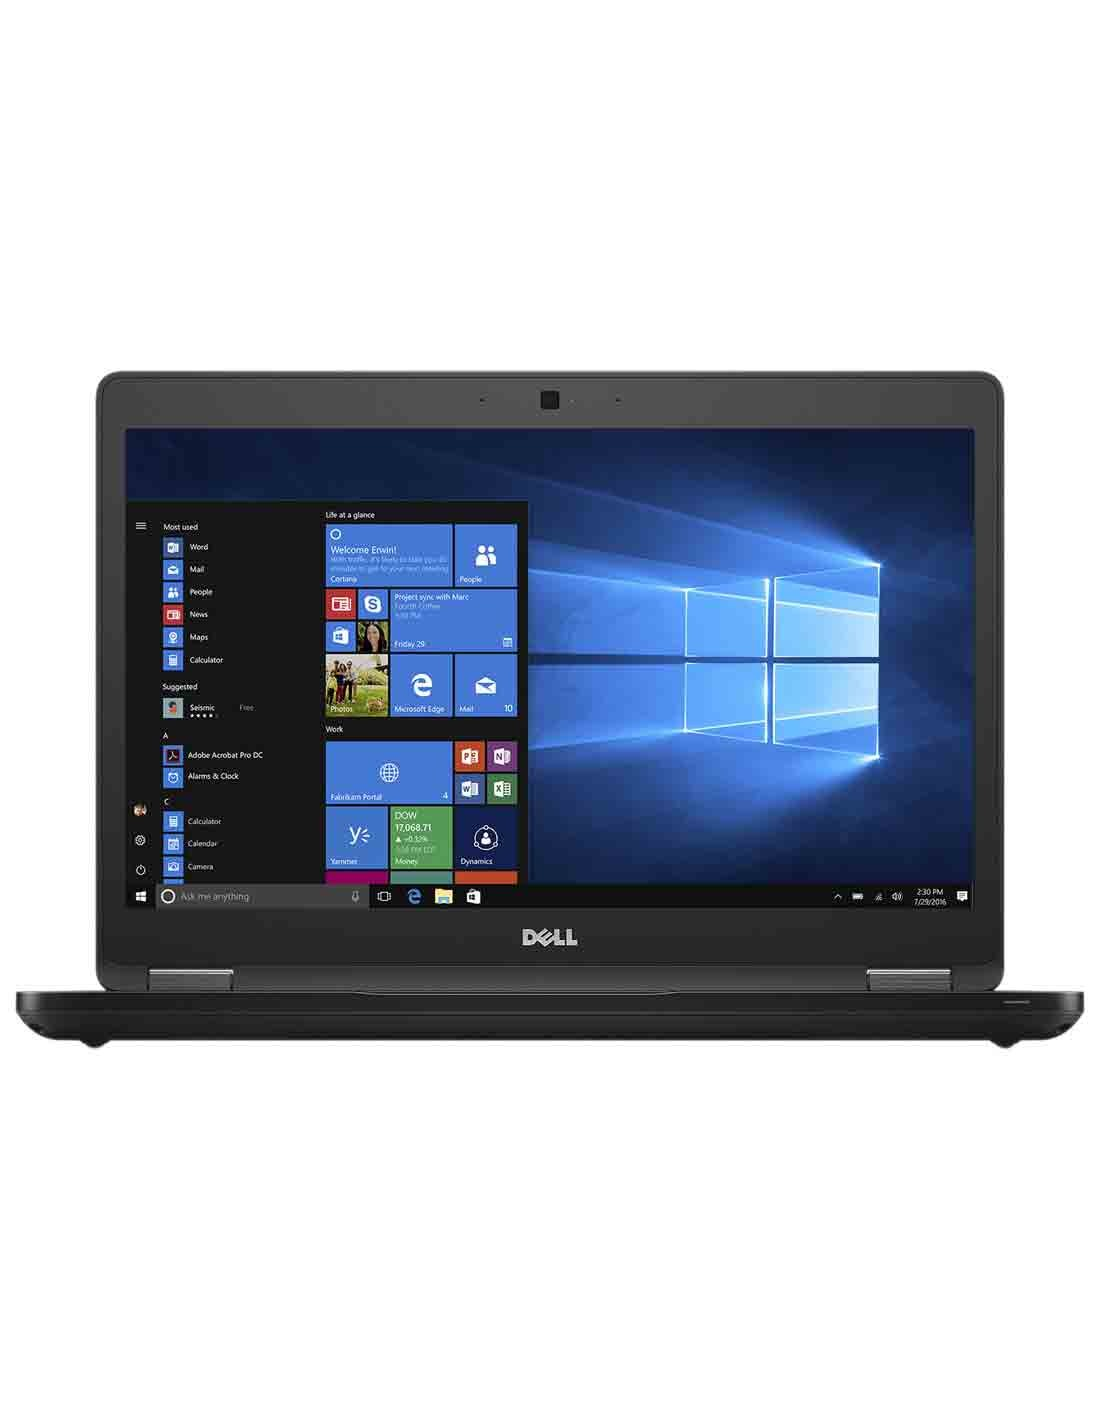 Dell Latitude 5480 Notebook at the cheapest price and fast free delivery in Dubai, UAE